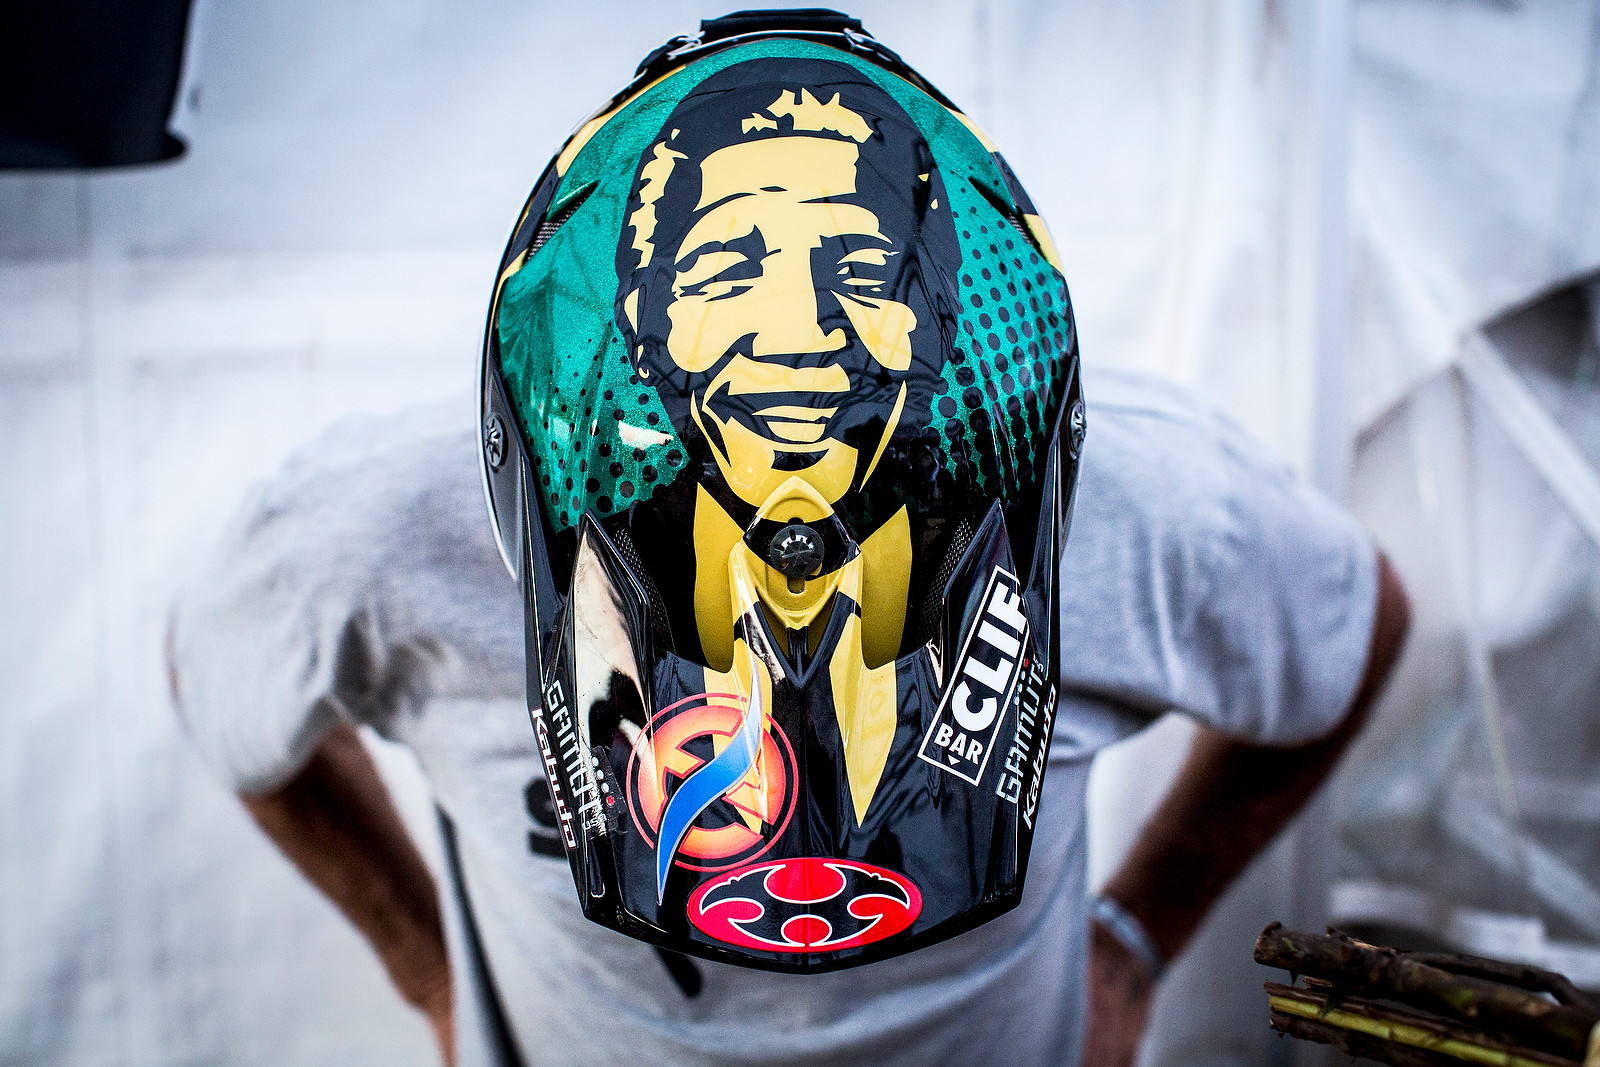 Greg Minnaar's World Championship Helmet - WINNING BIKE: Greg Minnaar's World Champs Santa Cruz V10c - Mountain Biking Pictures - Vital MTB